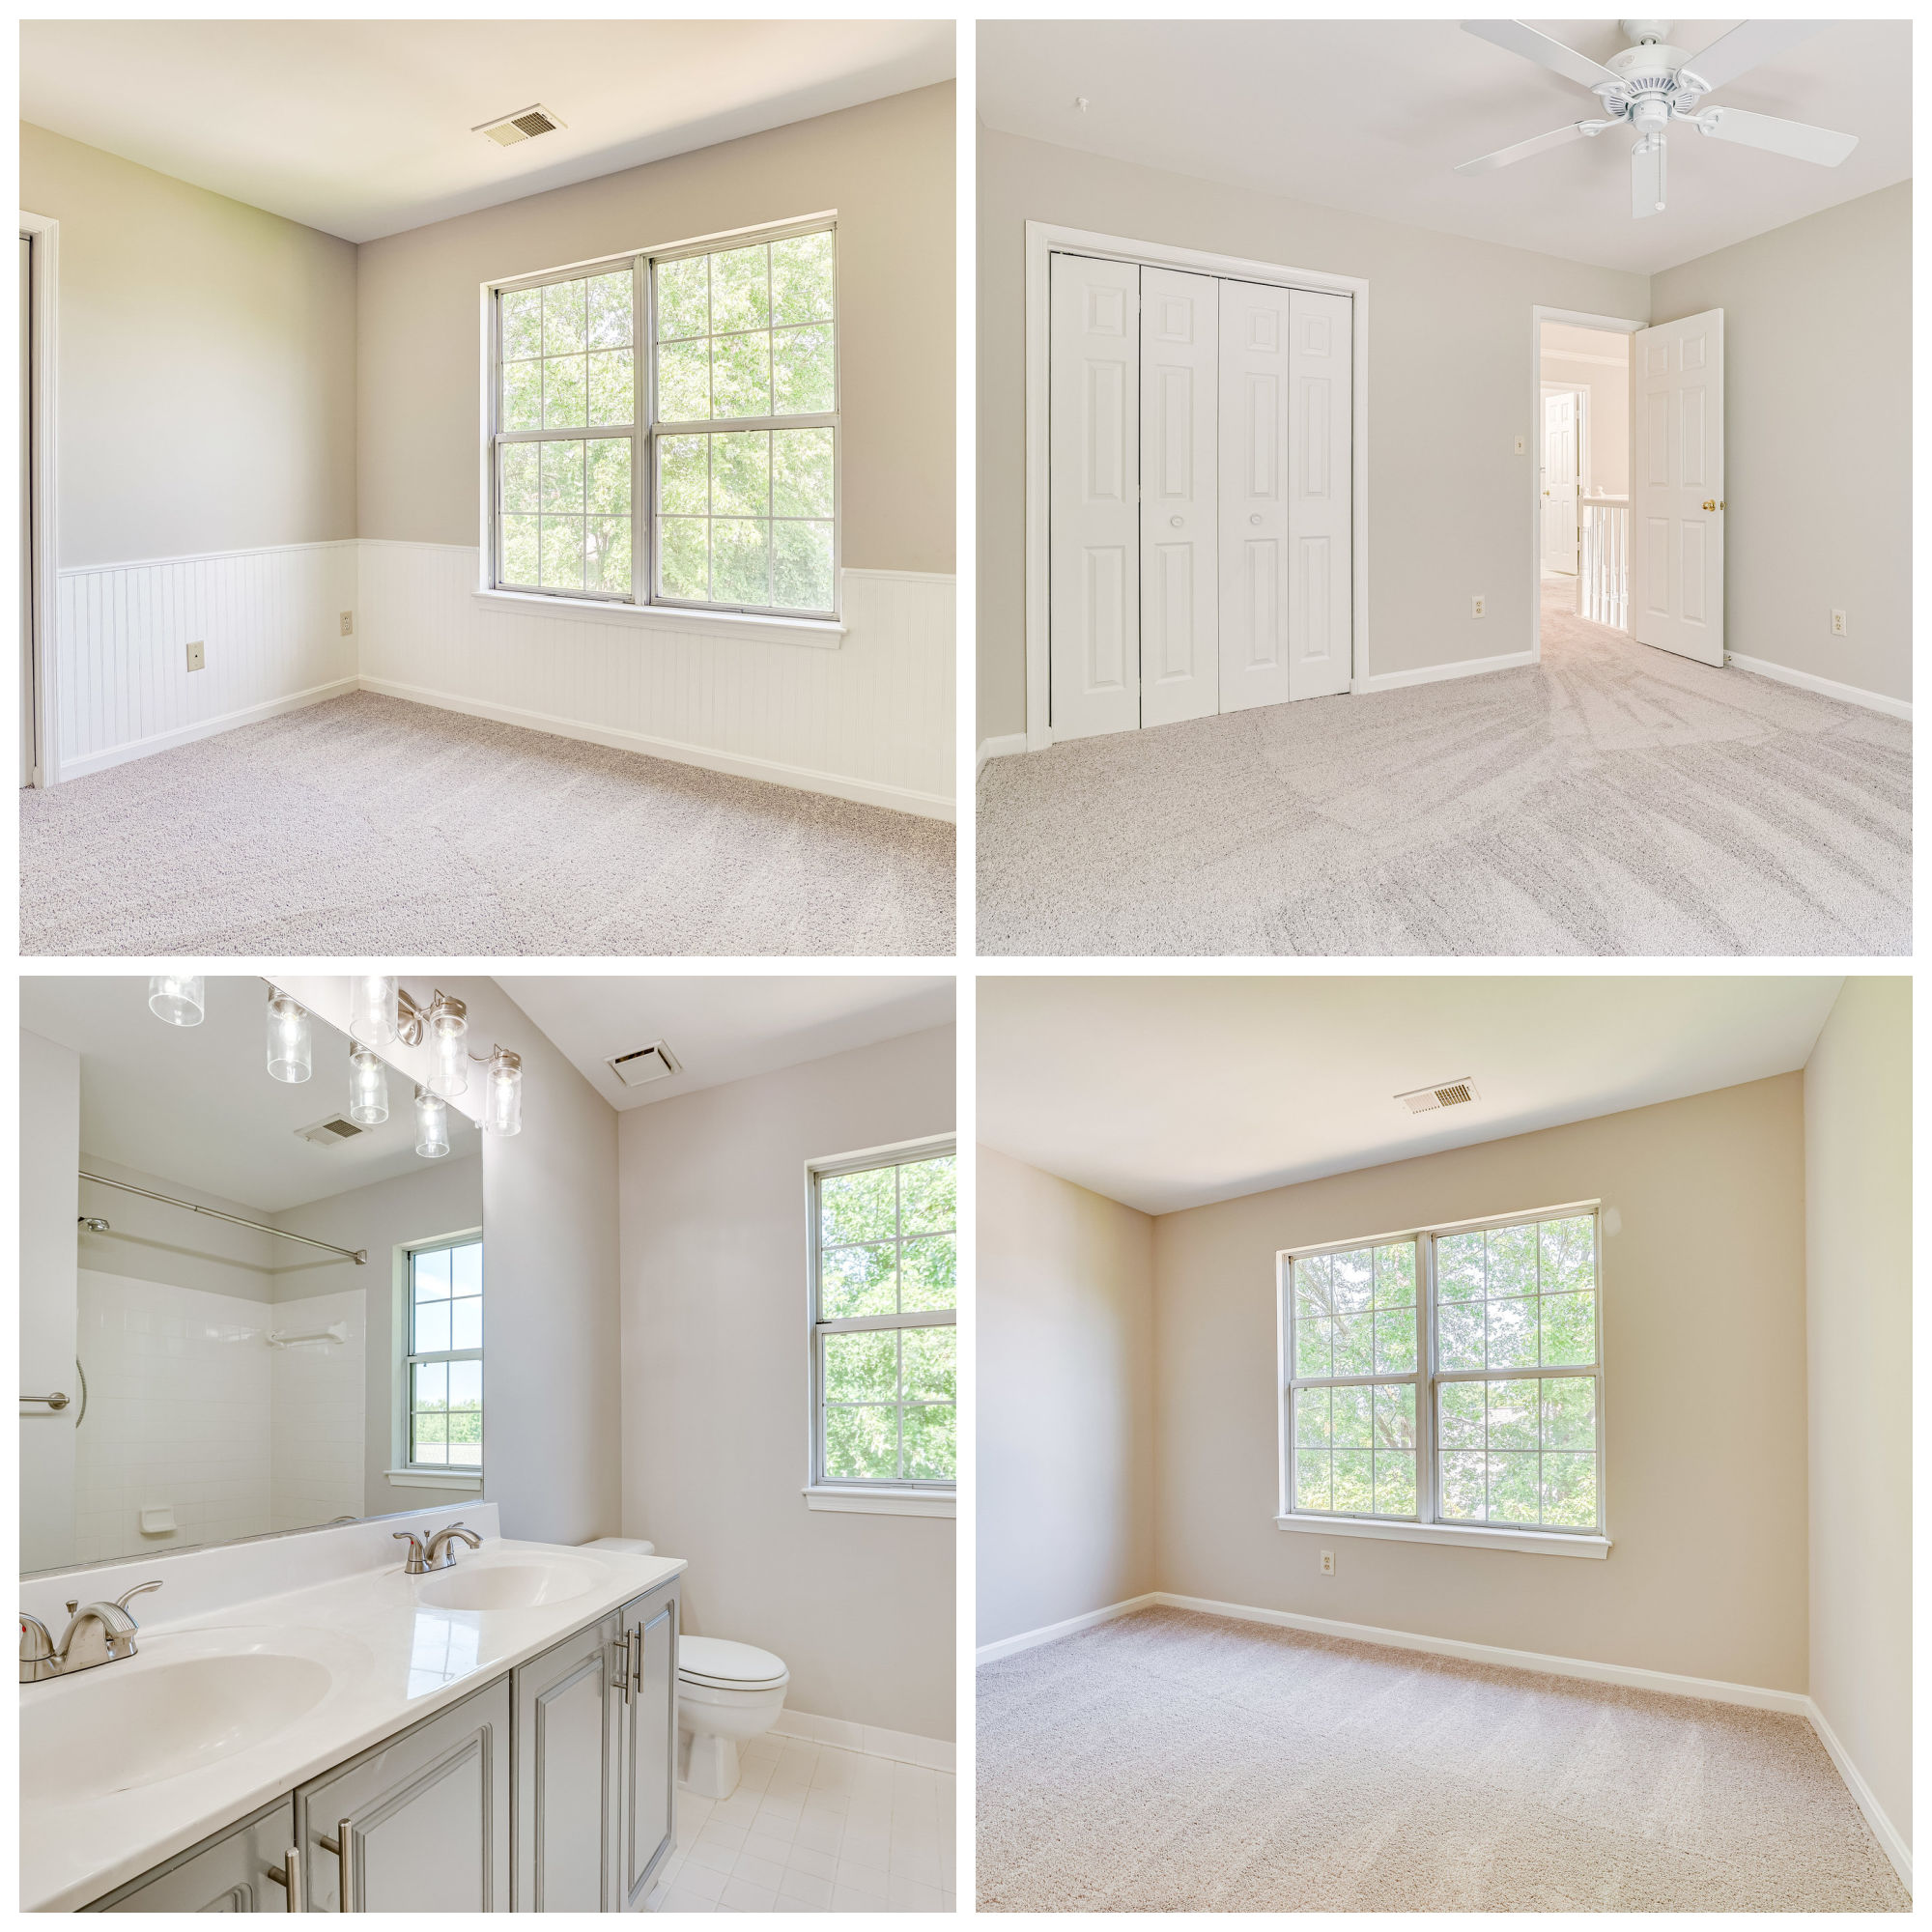 20485 Inwood Ct, Sterling- Additional Bedrooms and Bath